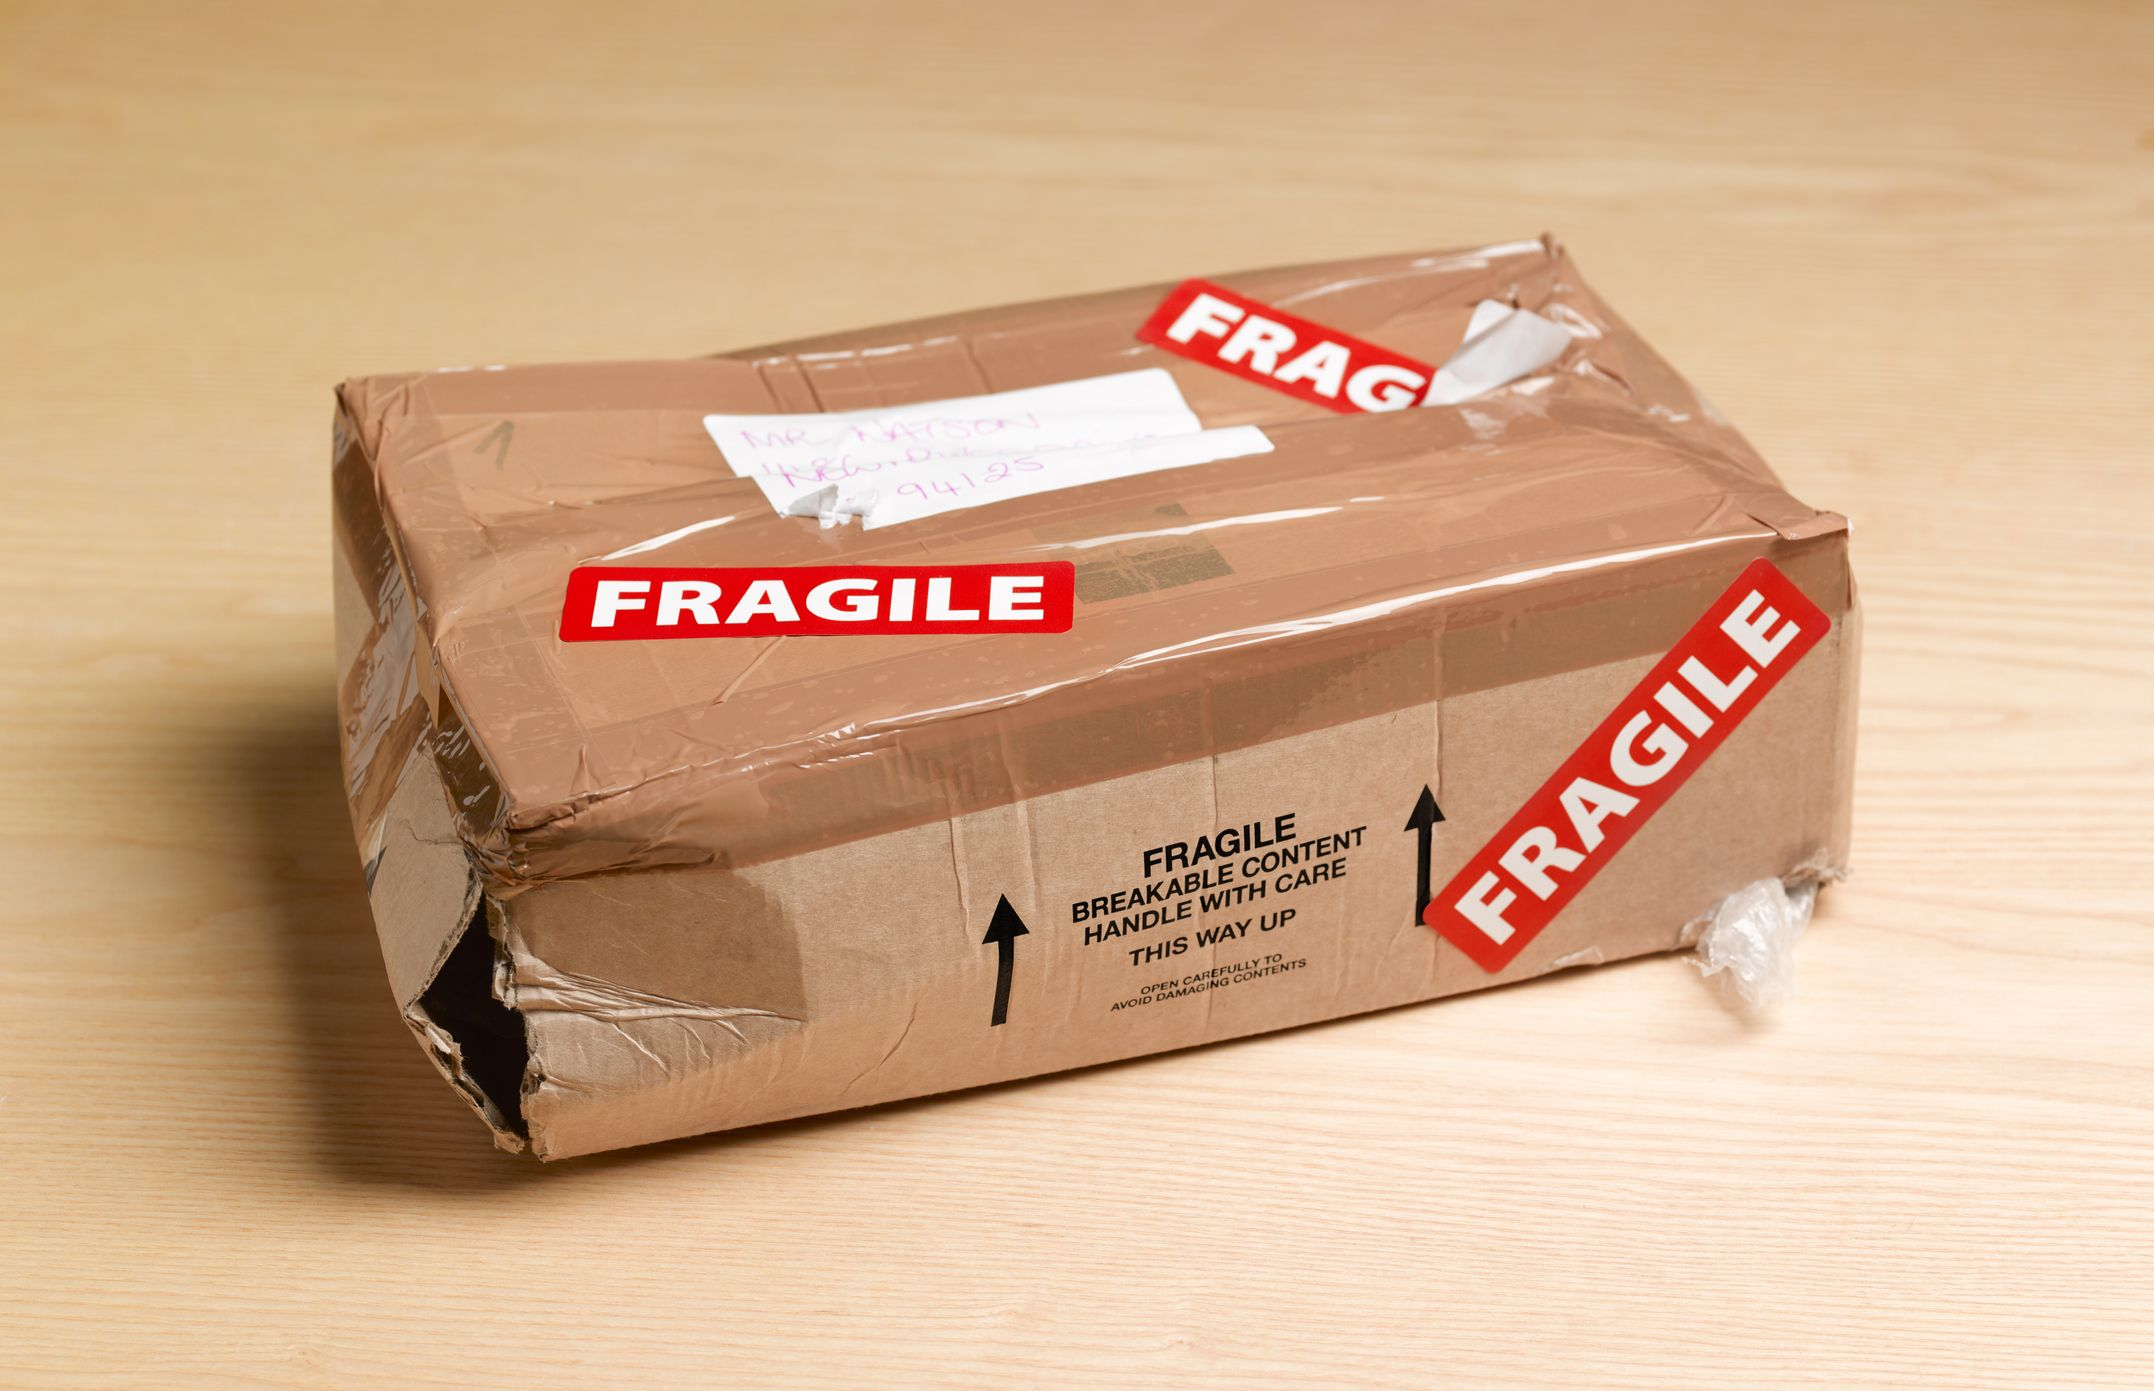 It's not their fault that your package is damaged.